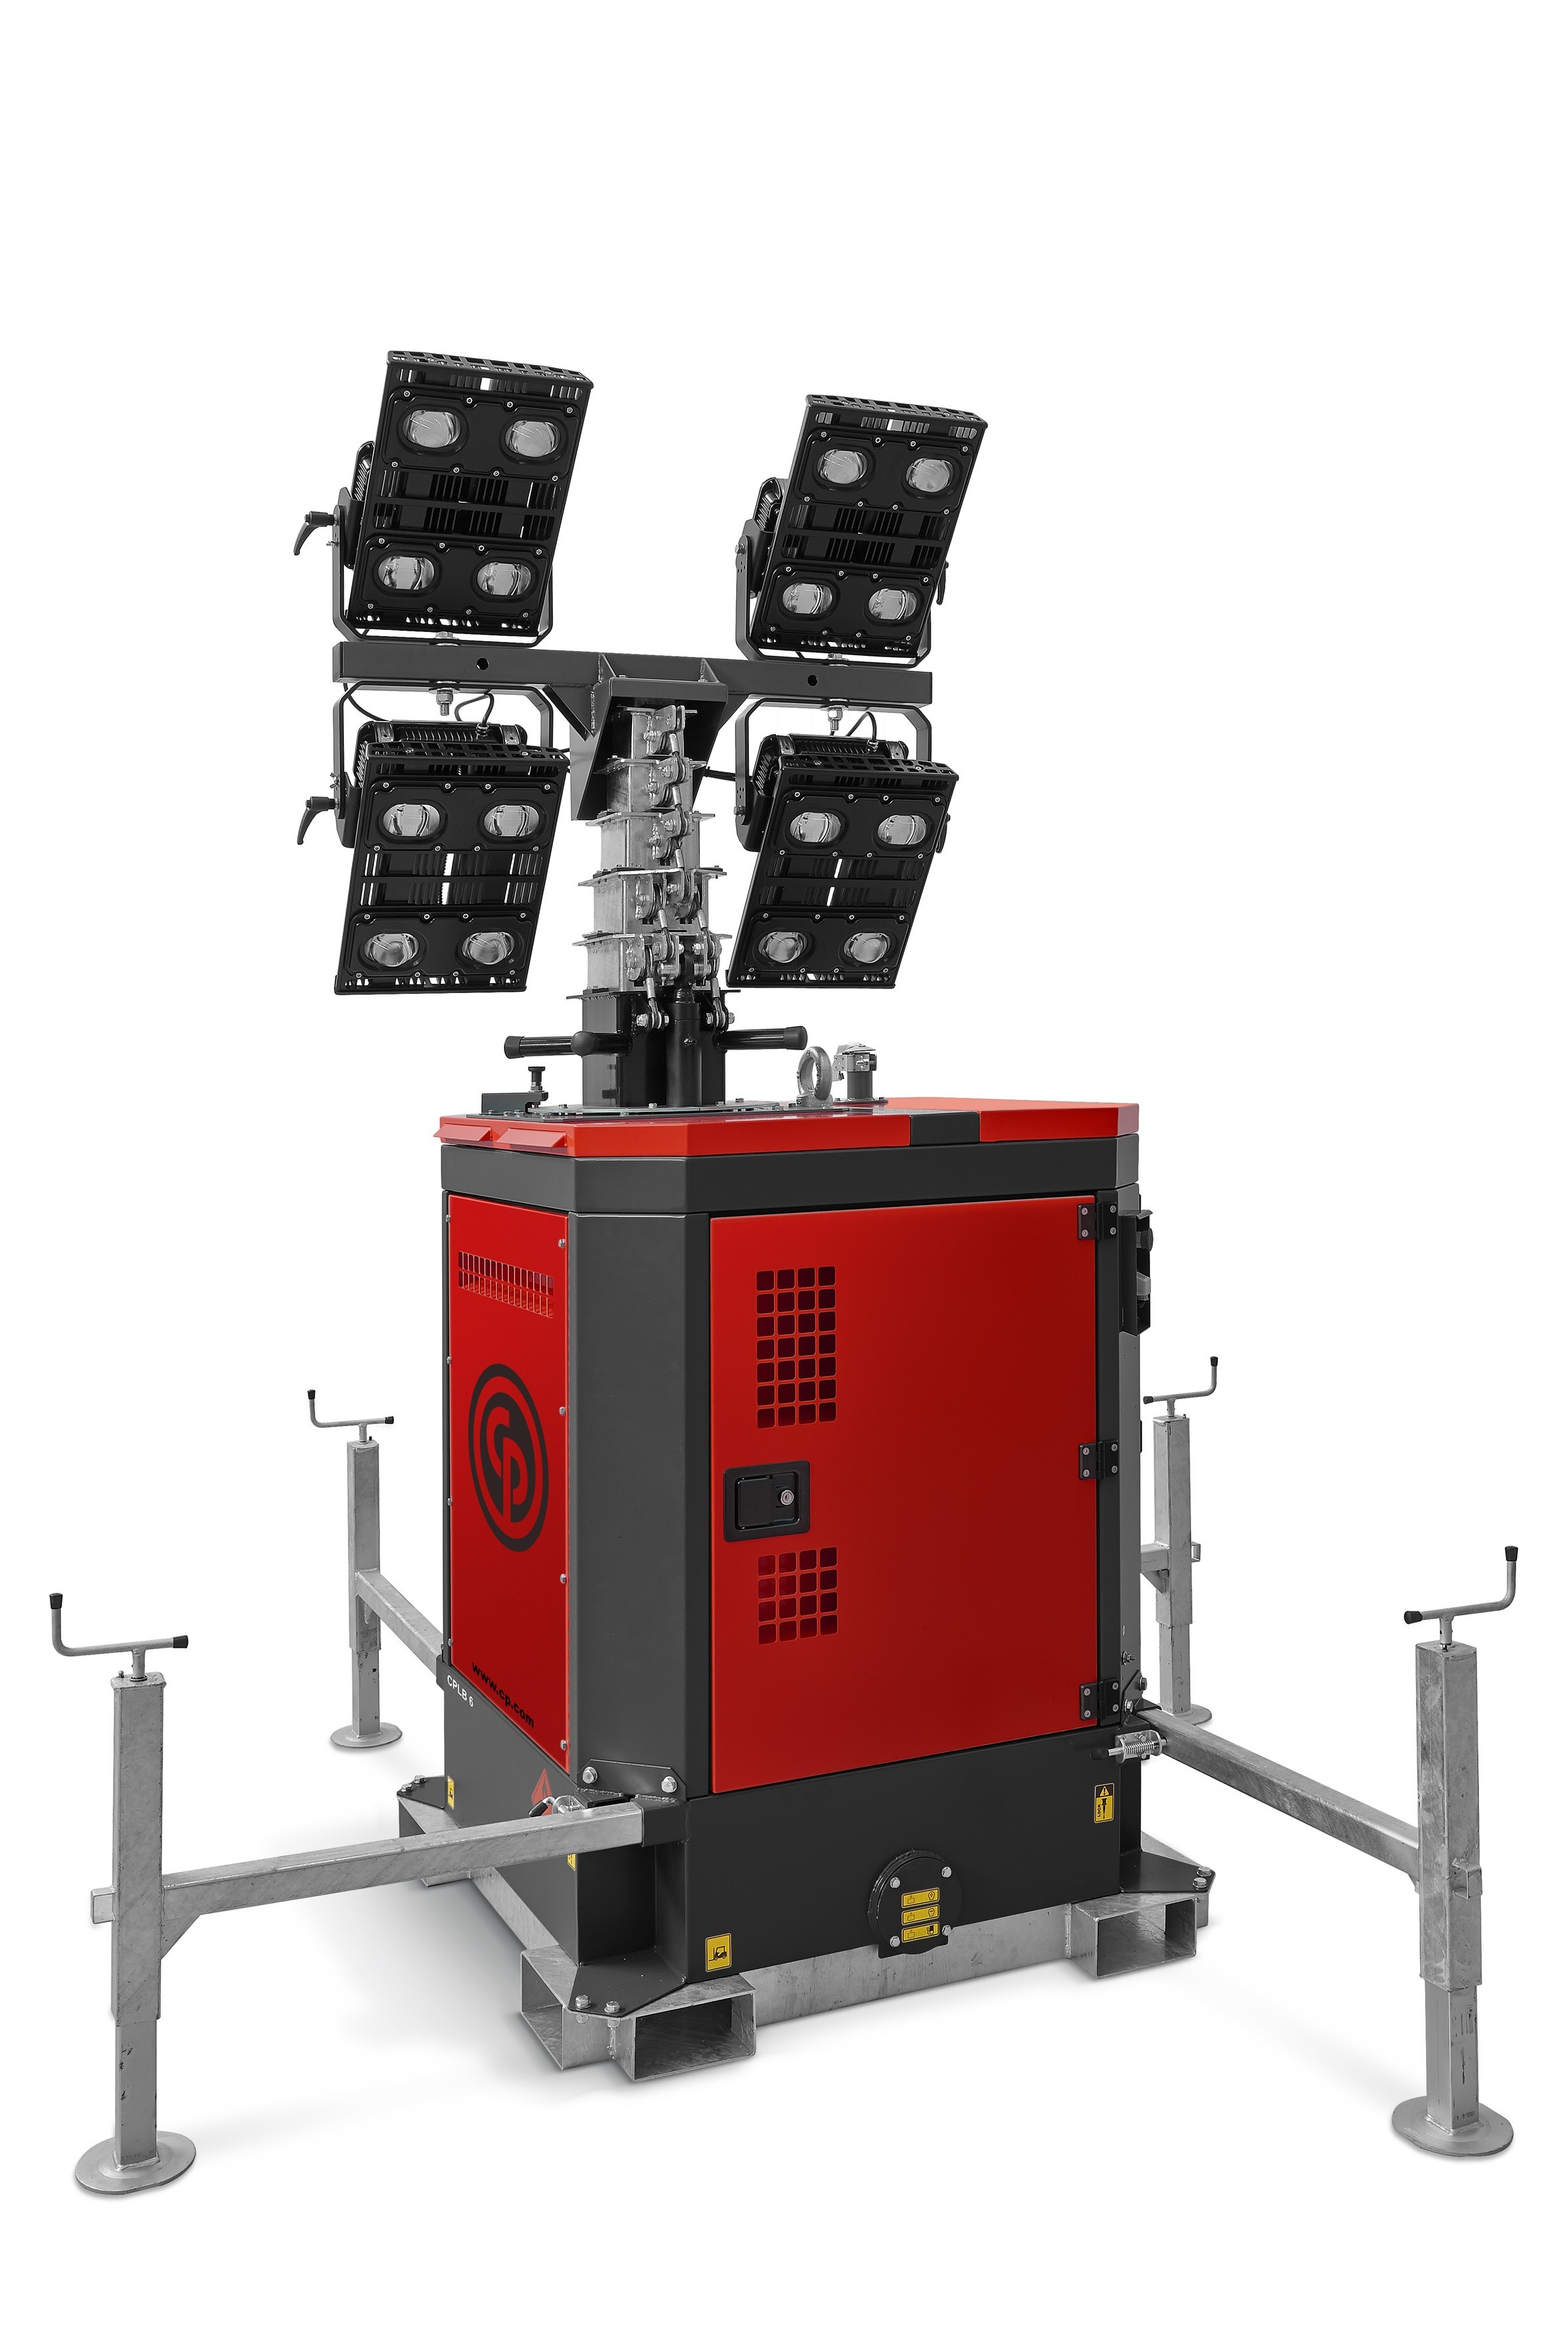 Chicago Pneumatic unveils LED lighting tower